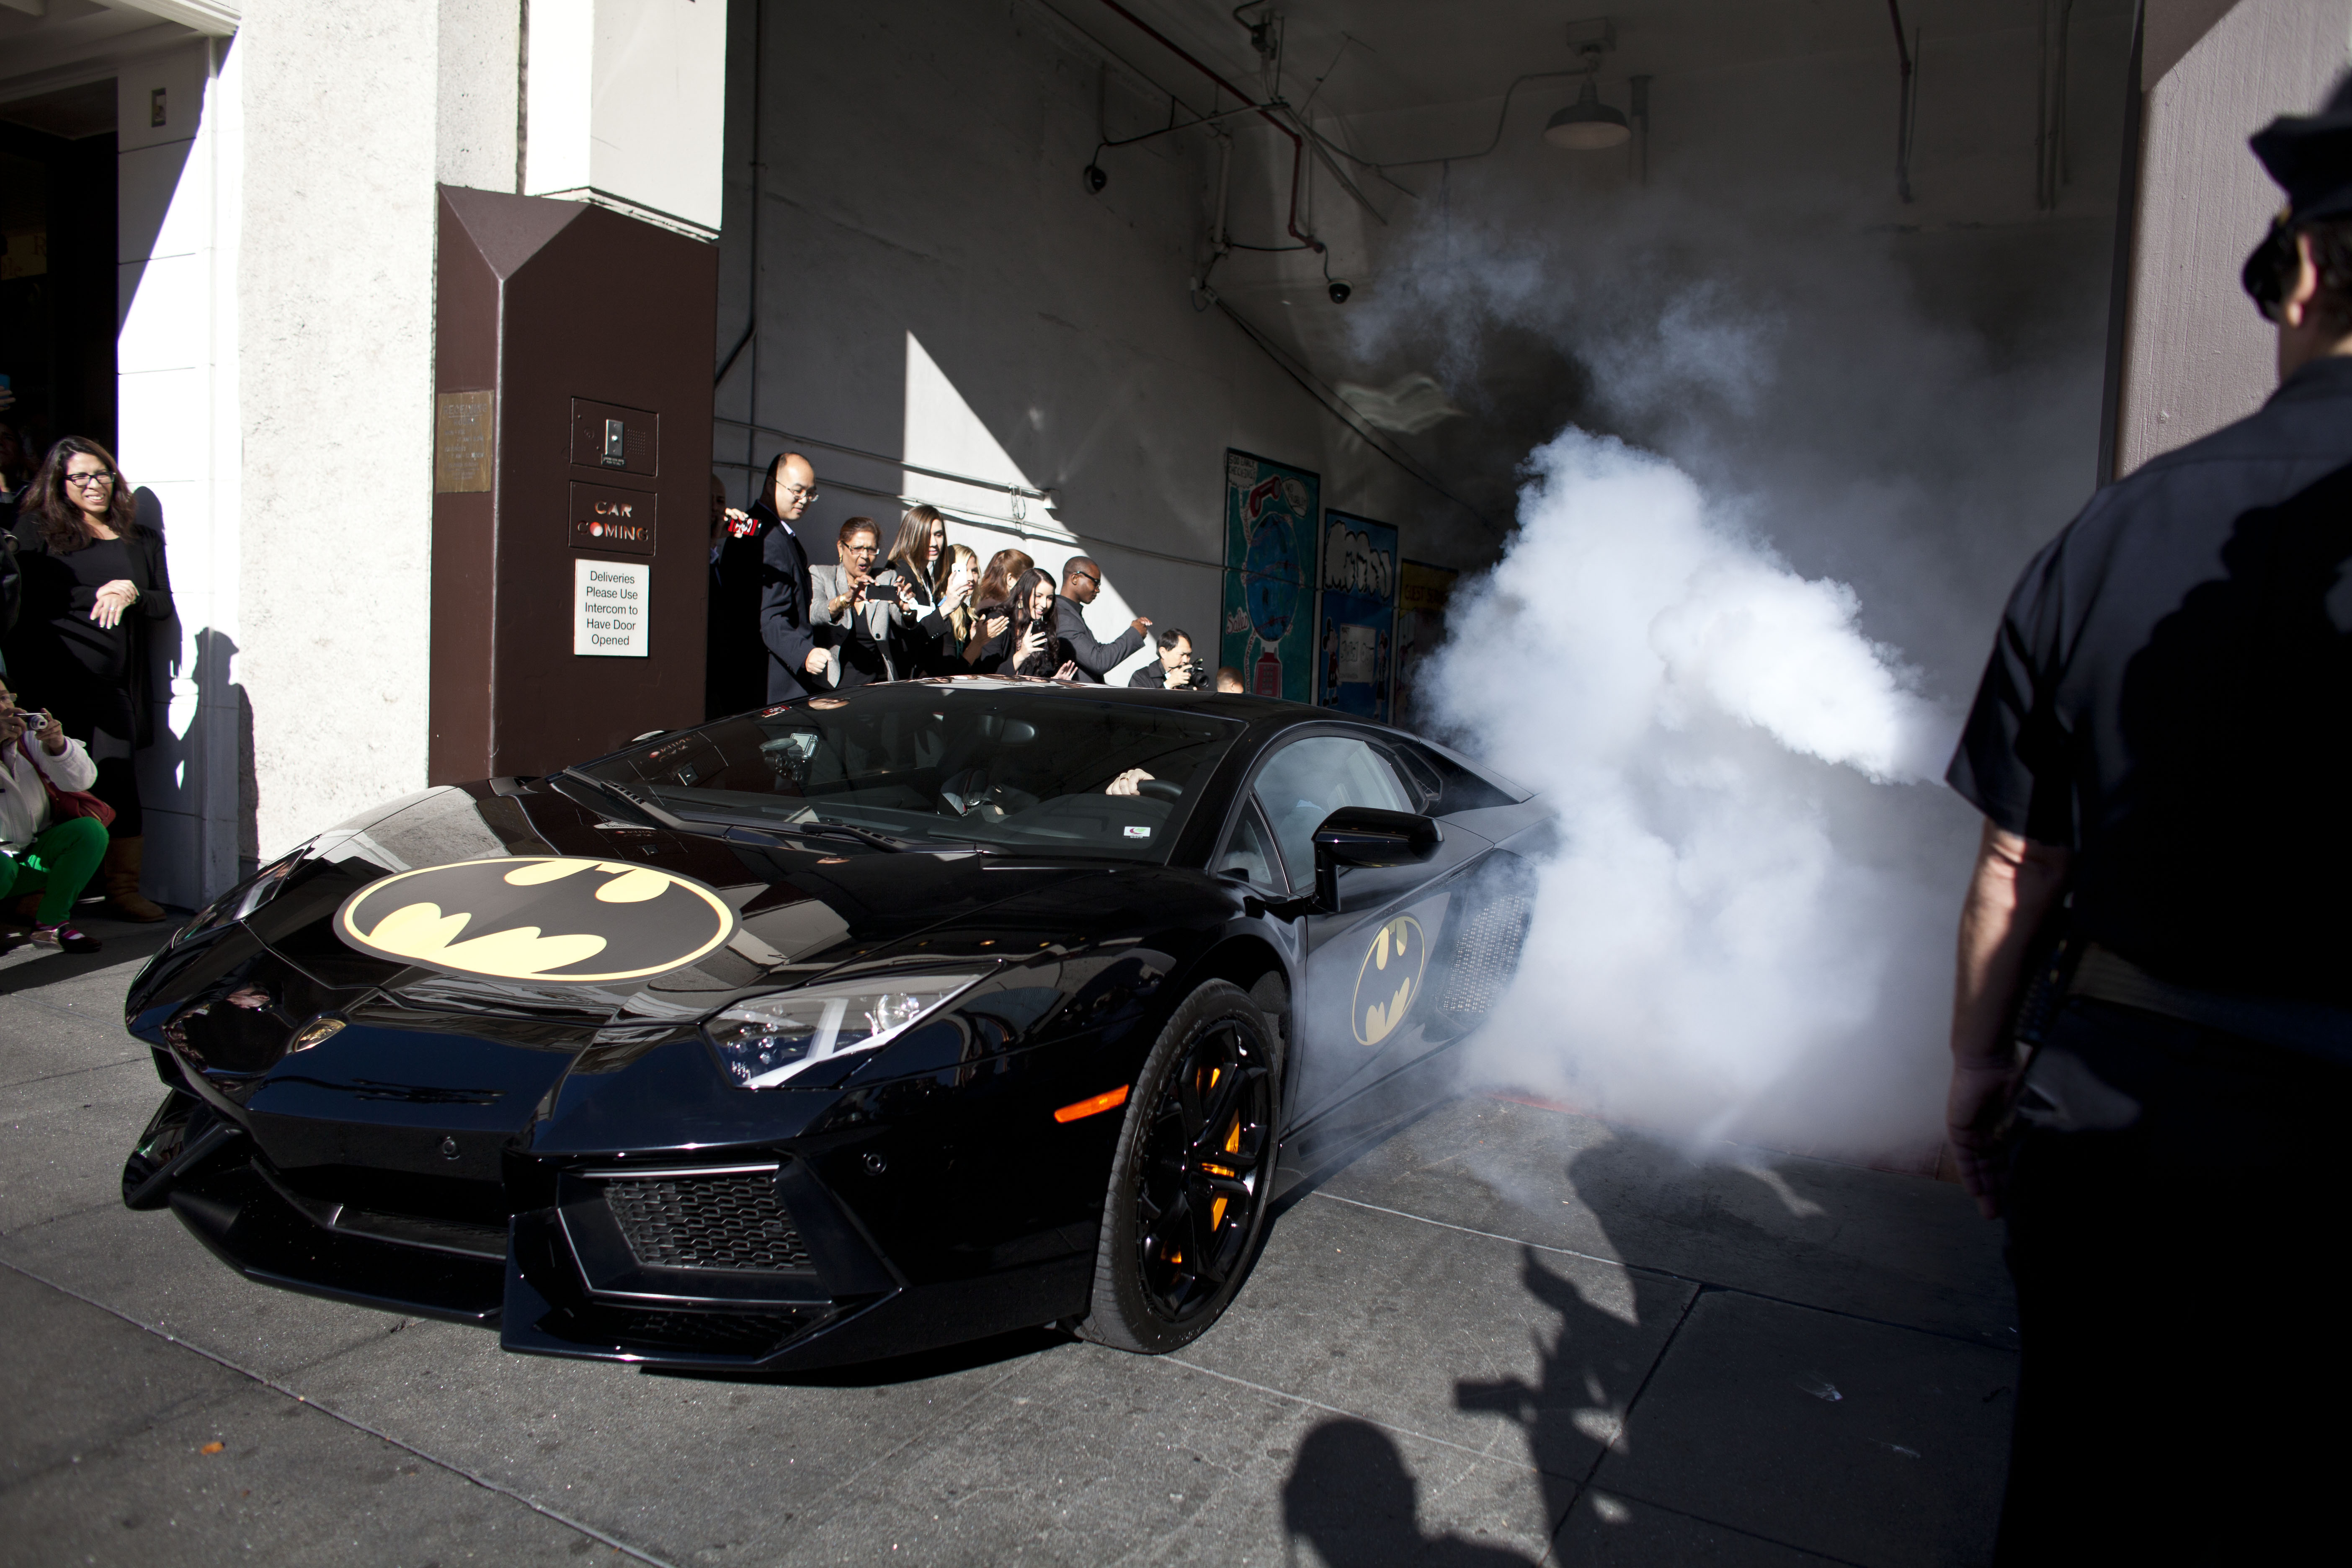 To the Batmobile! Batkid exits his cave at Union Square.